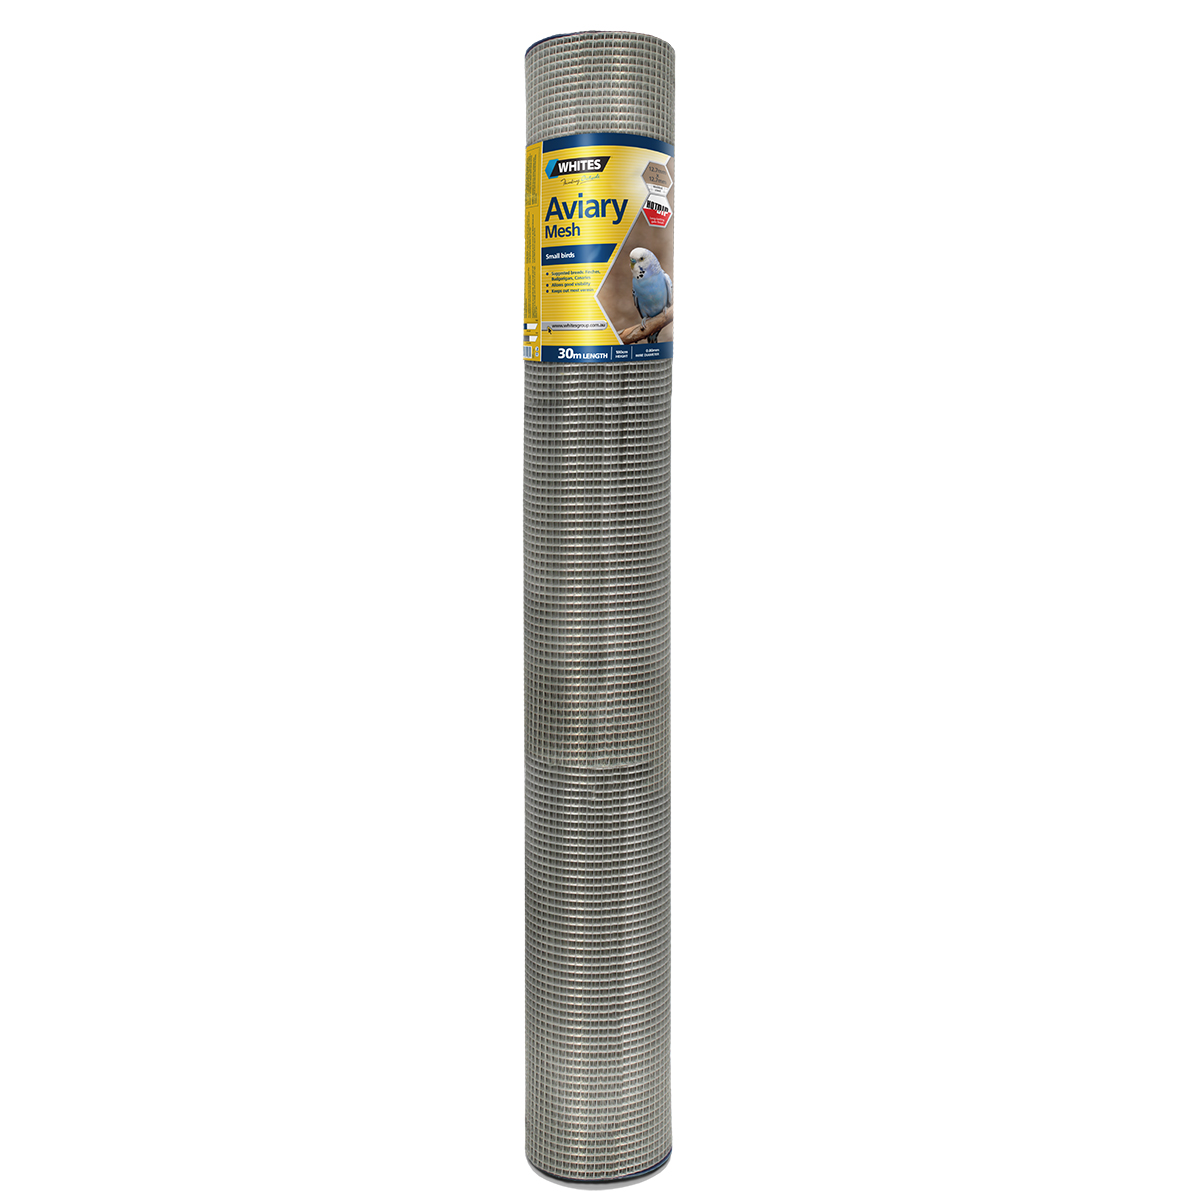 20861 180cm 12x12 Small Bird Aviary Mesh 30m